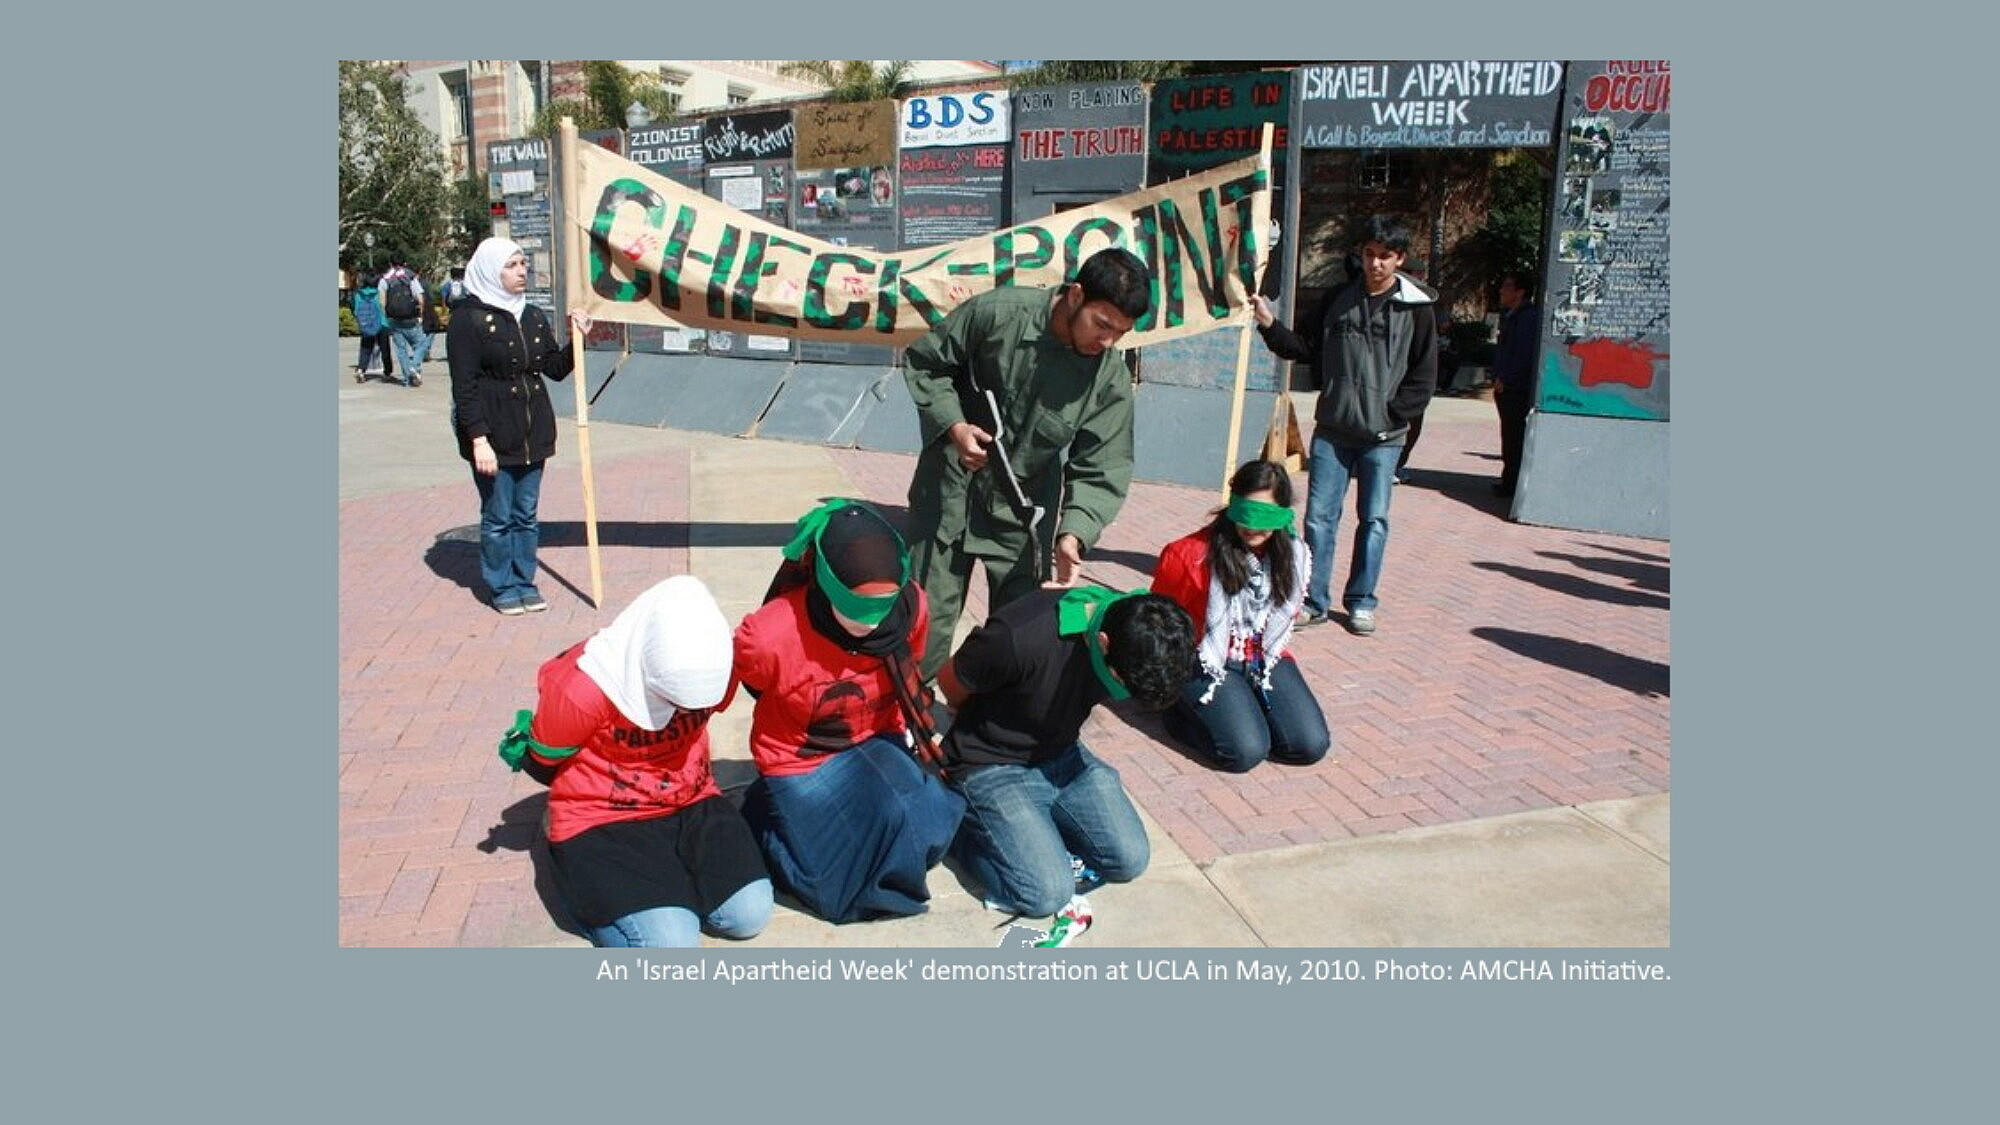 """""""Israeli Apartheid Week,"""" an annual anti-Zionist initiative, in May 2010 at the University of California, Los Angeles (UCLA) campus. Credit: AMCHA Initiative."""